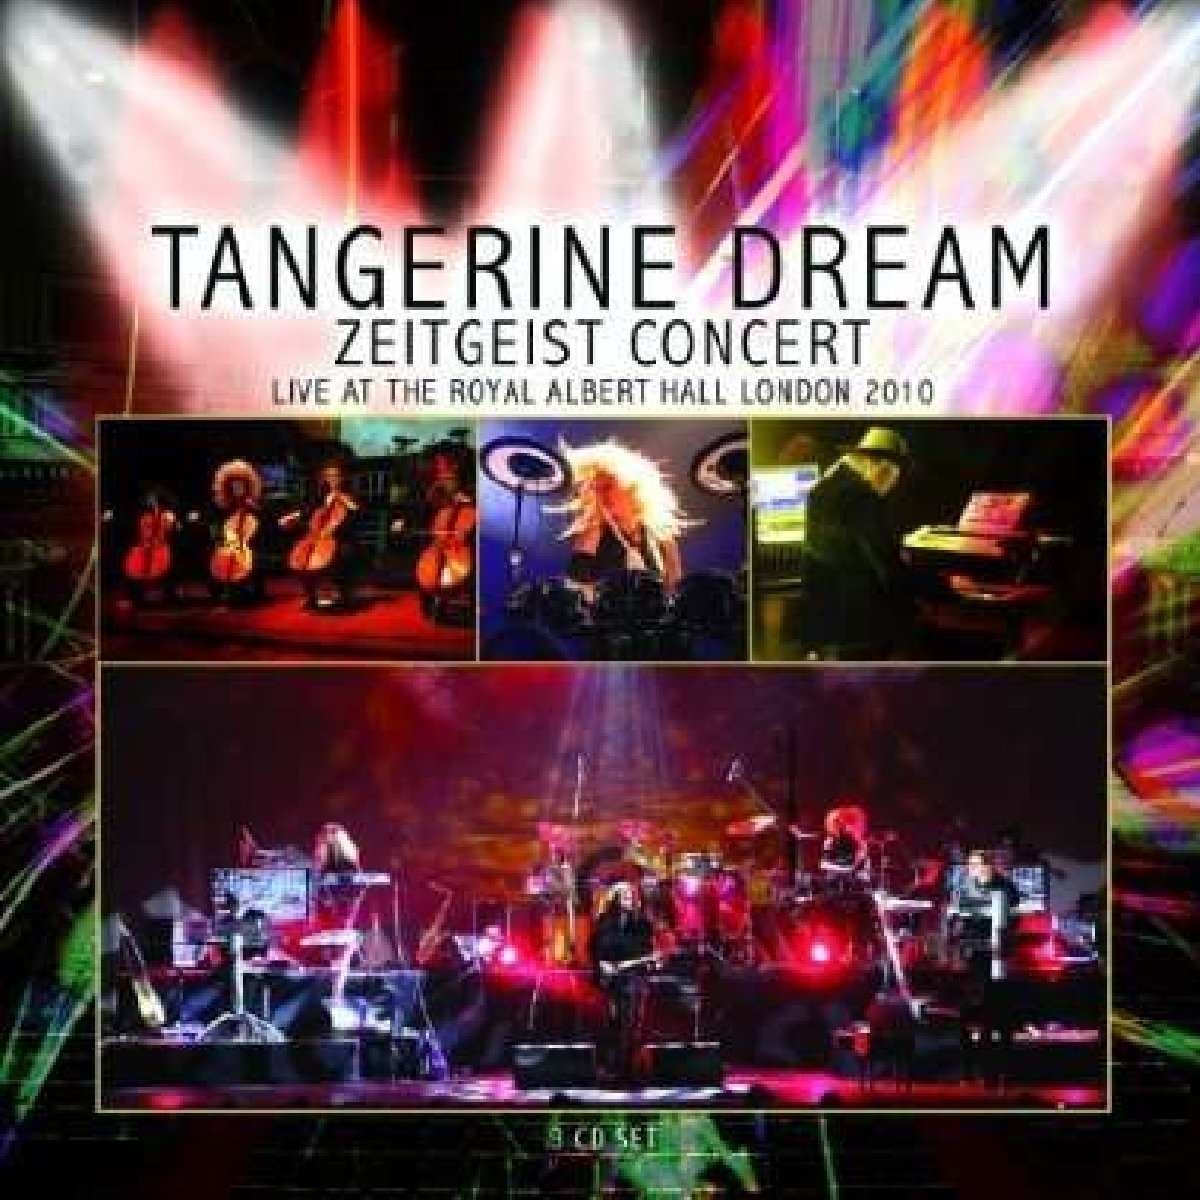 CD : Tangerine Dream - Zeitgeist Concert - Live At The Royal Albert Hall, London 2010 (Boxed Set, 3 Disc)